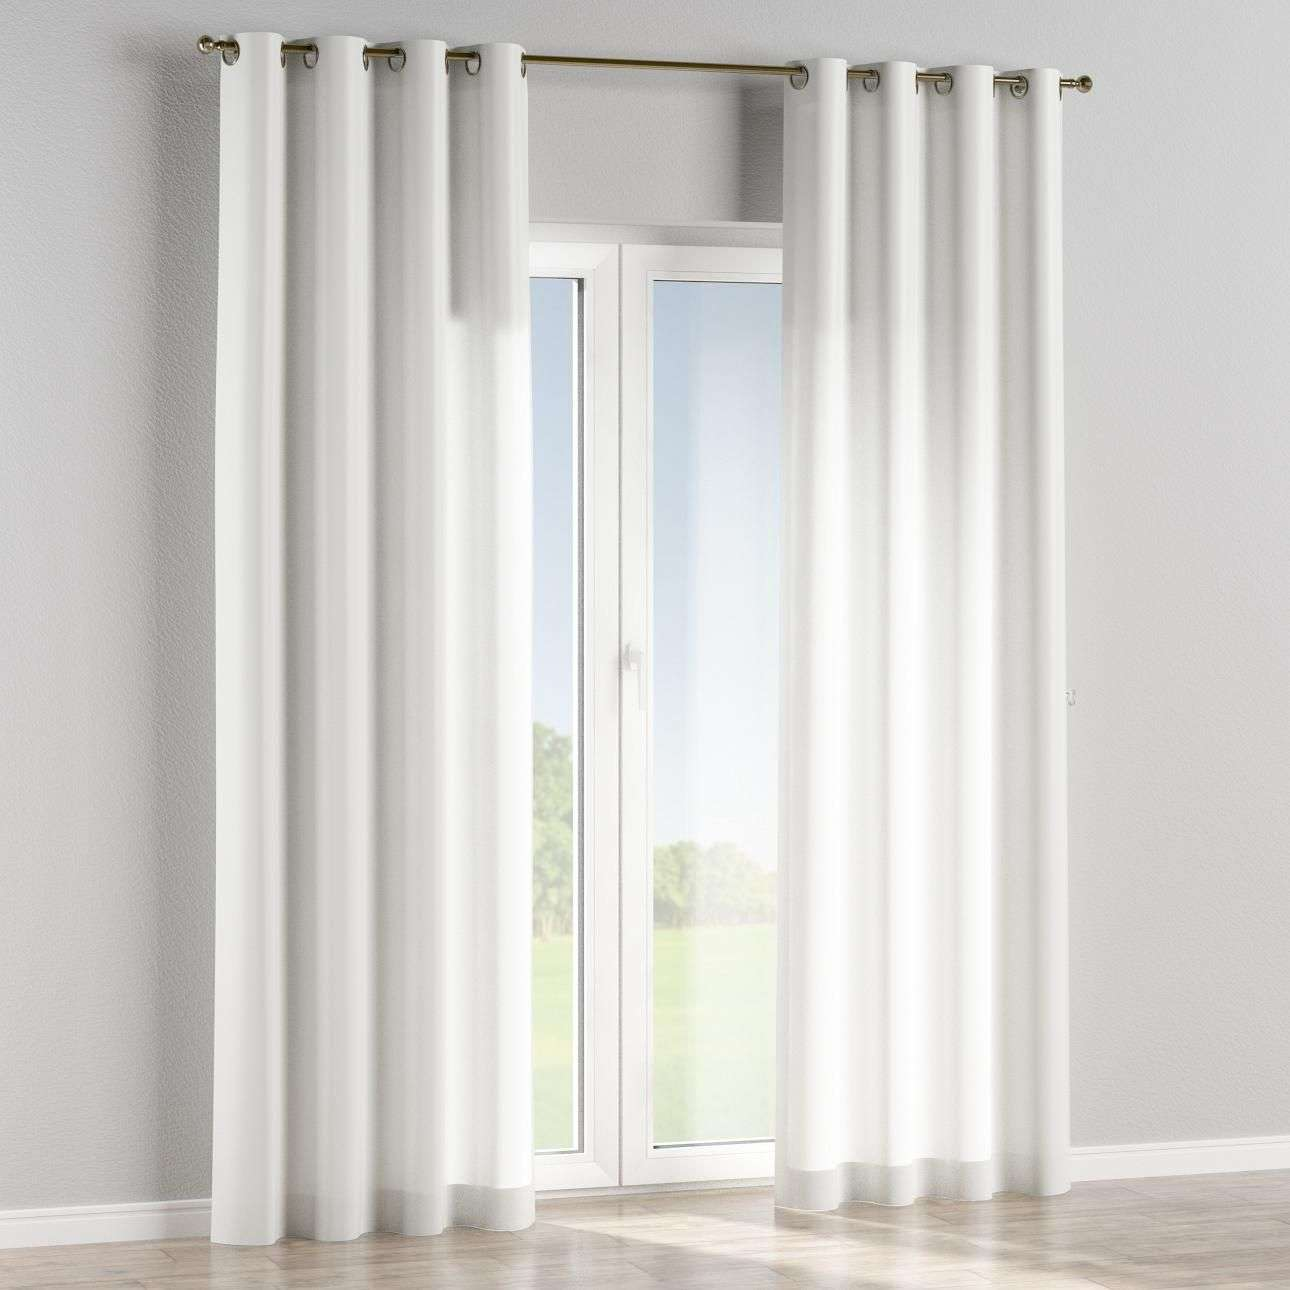 Eyelet lined curtains in collection Rustica, fabric: 138-10